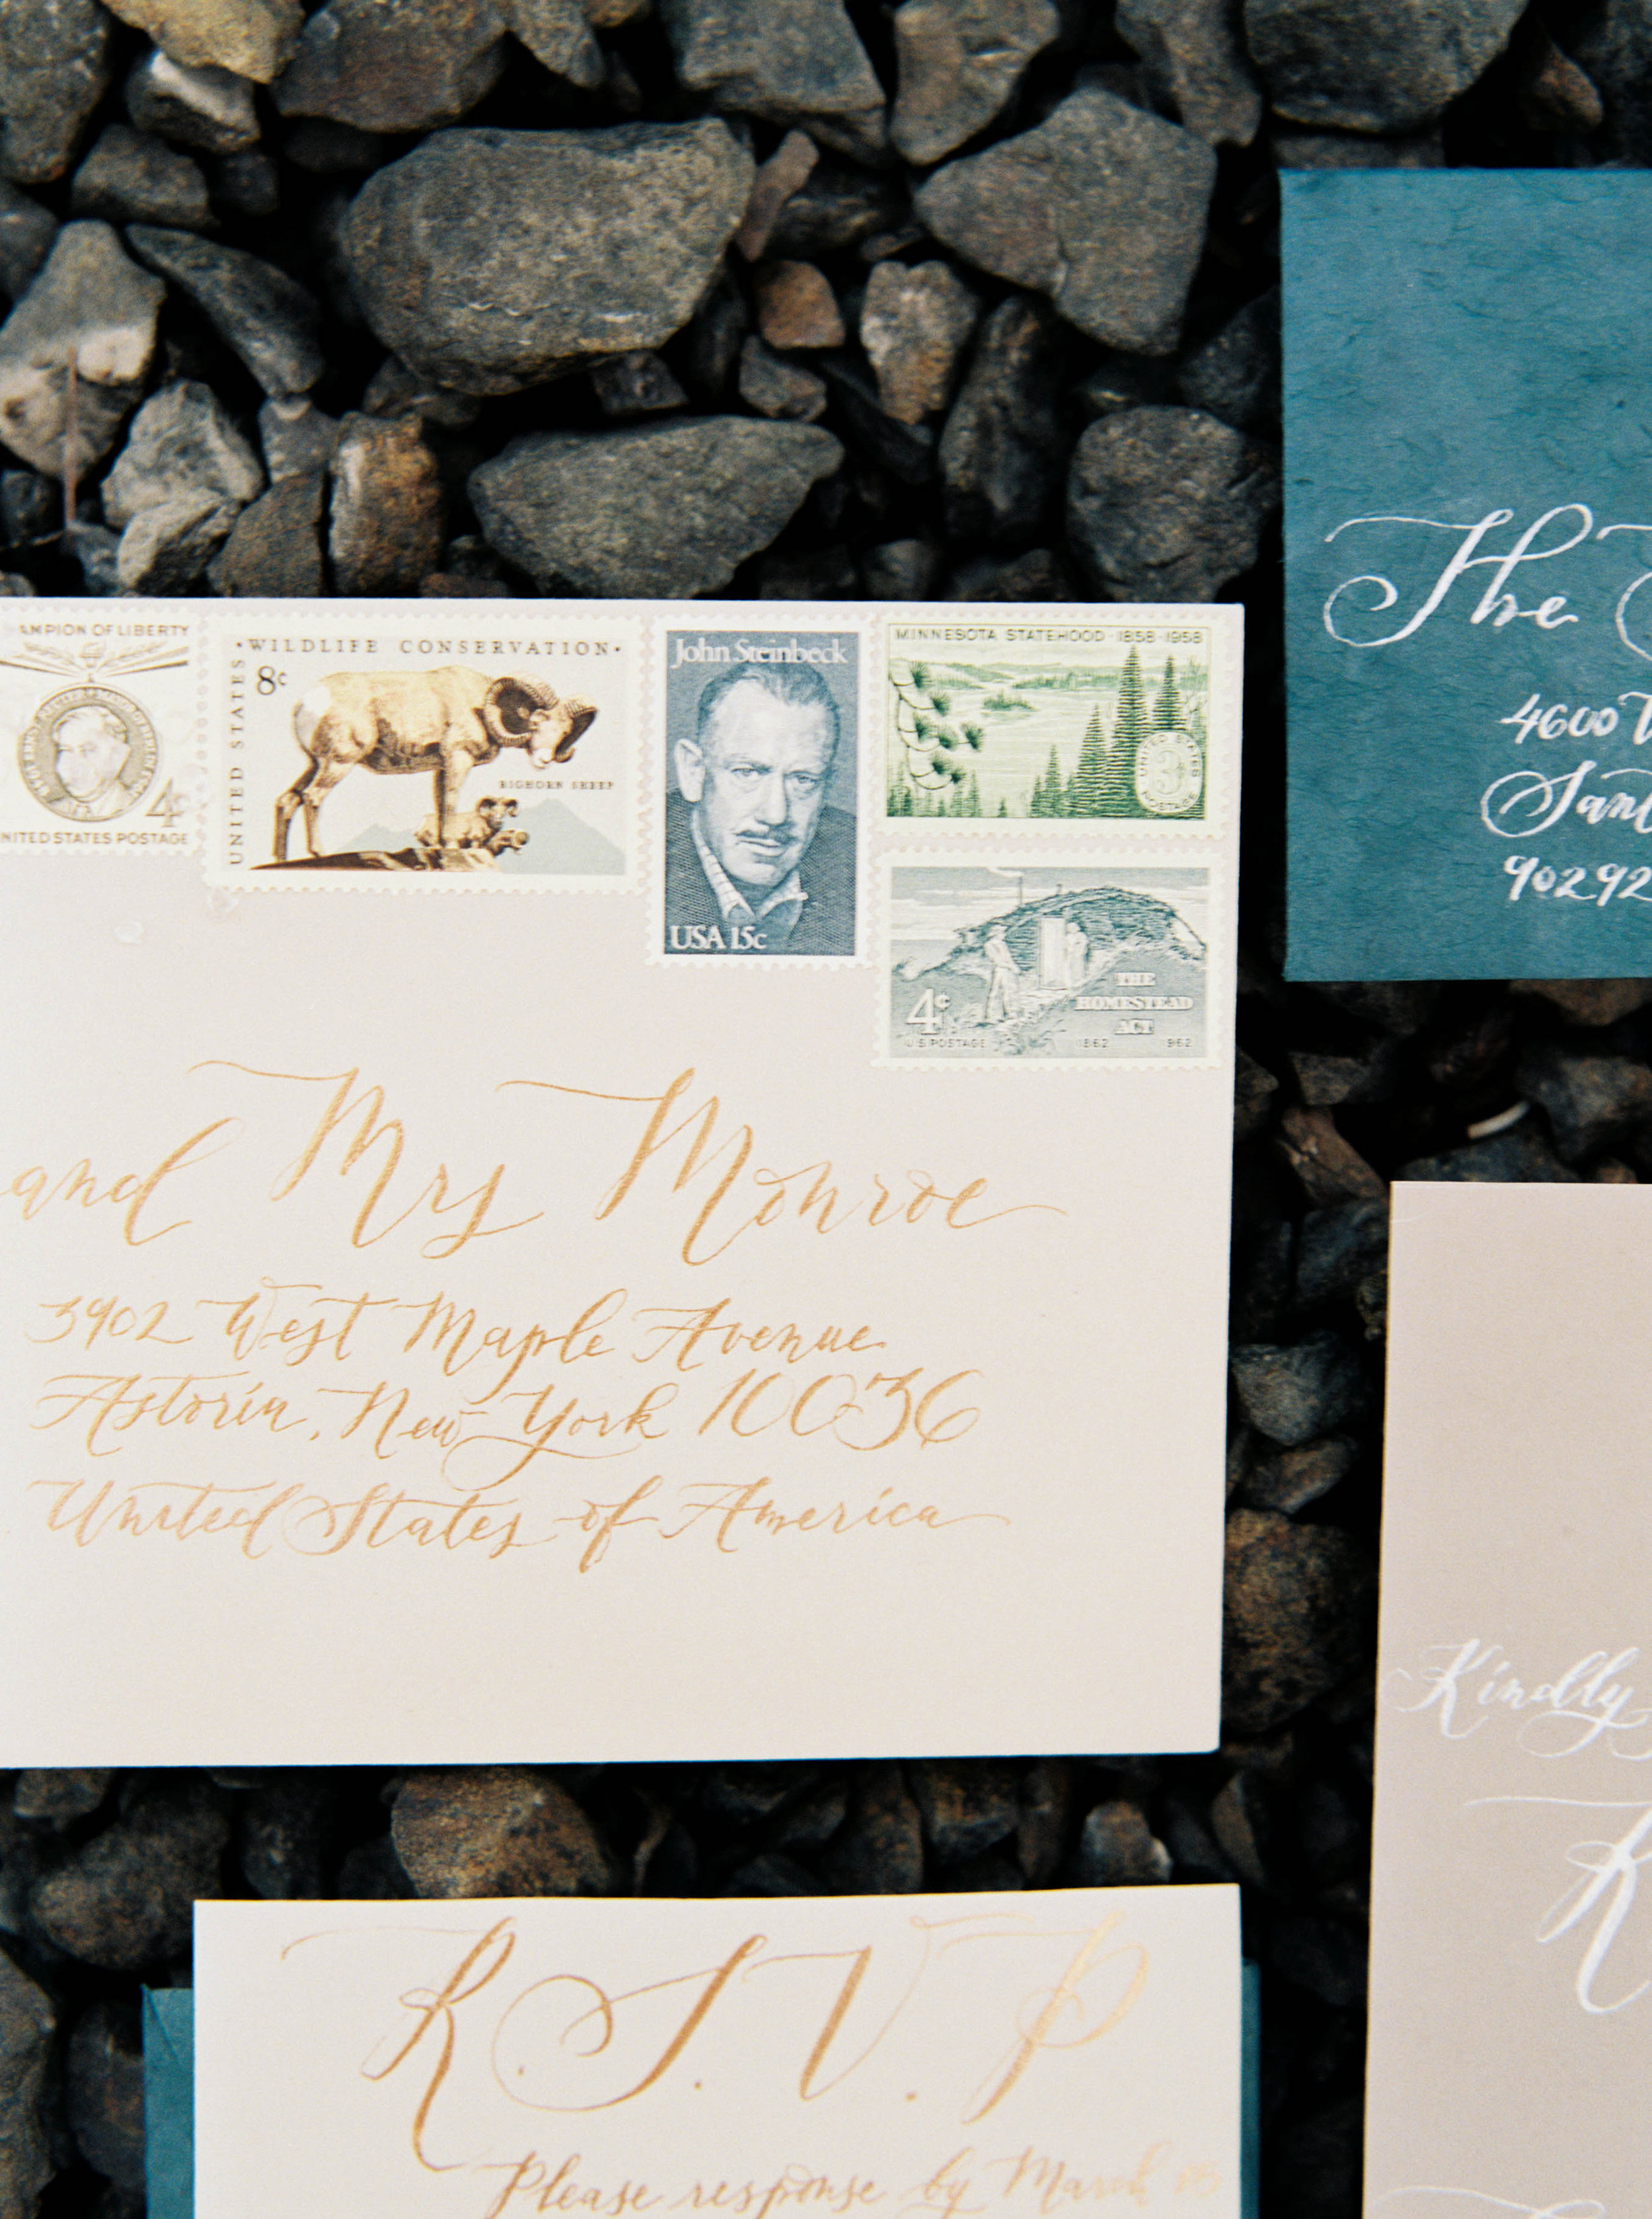 Let's talk about some tips to pull a cohesive look with your vintage stamps. For this shoot, I use a combination of animal and landscape theme with some basic single color vintage stamps that complement the copper from the ink and the some of the deep blue from the invitation suite.